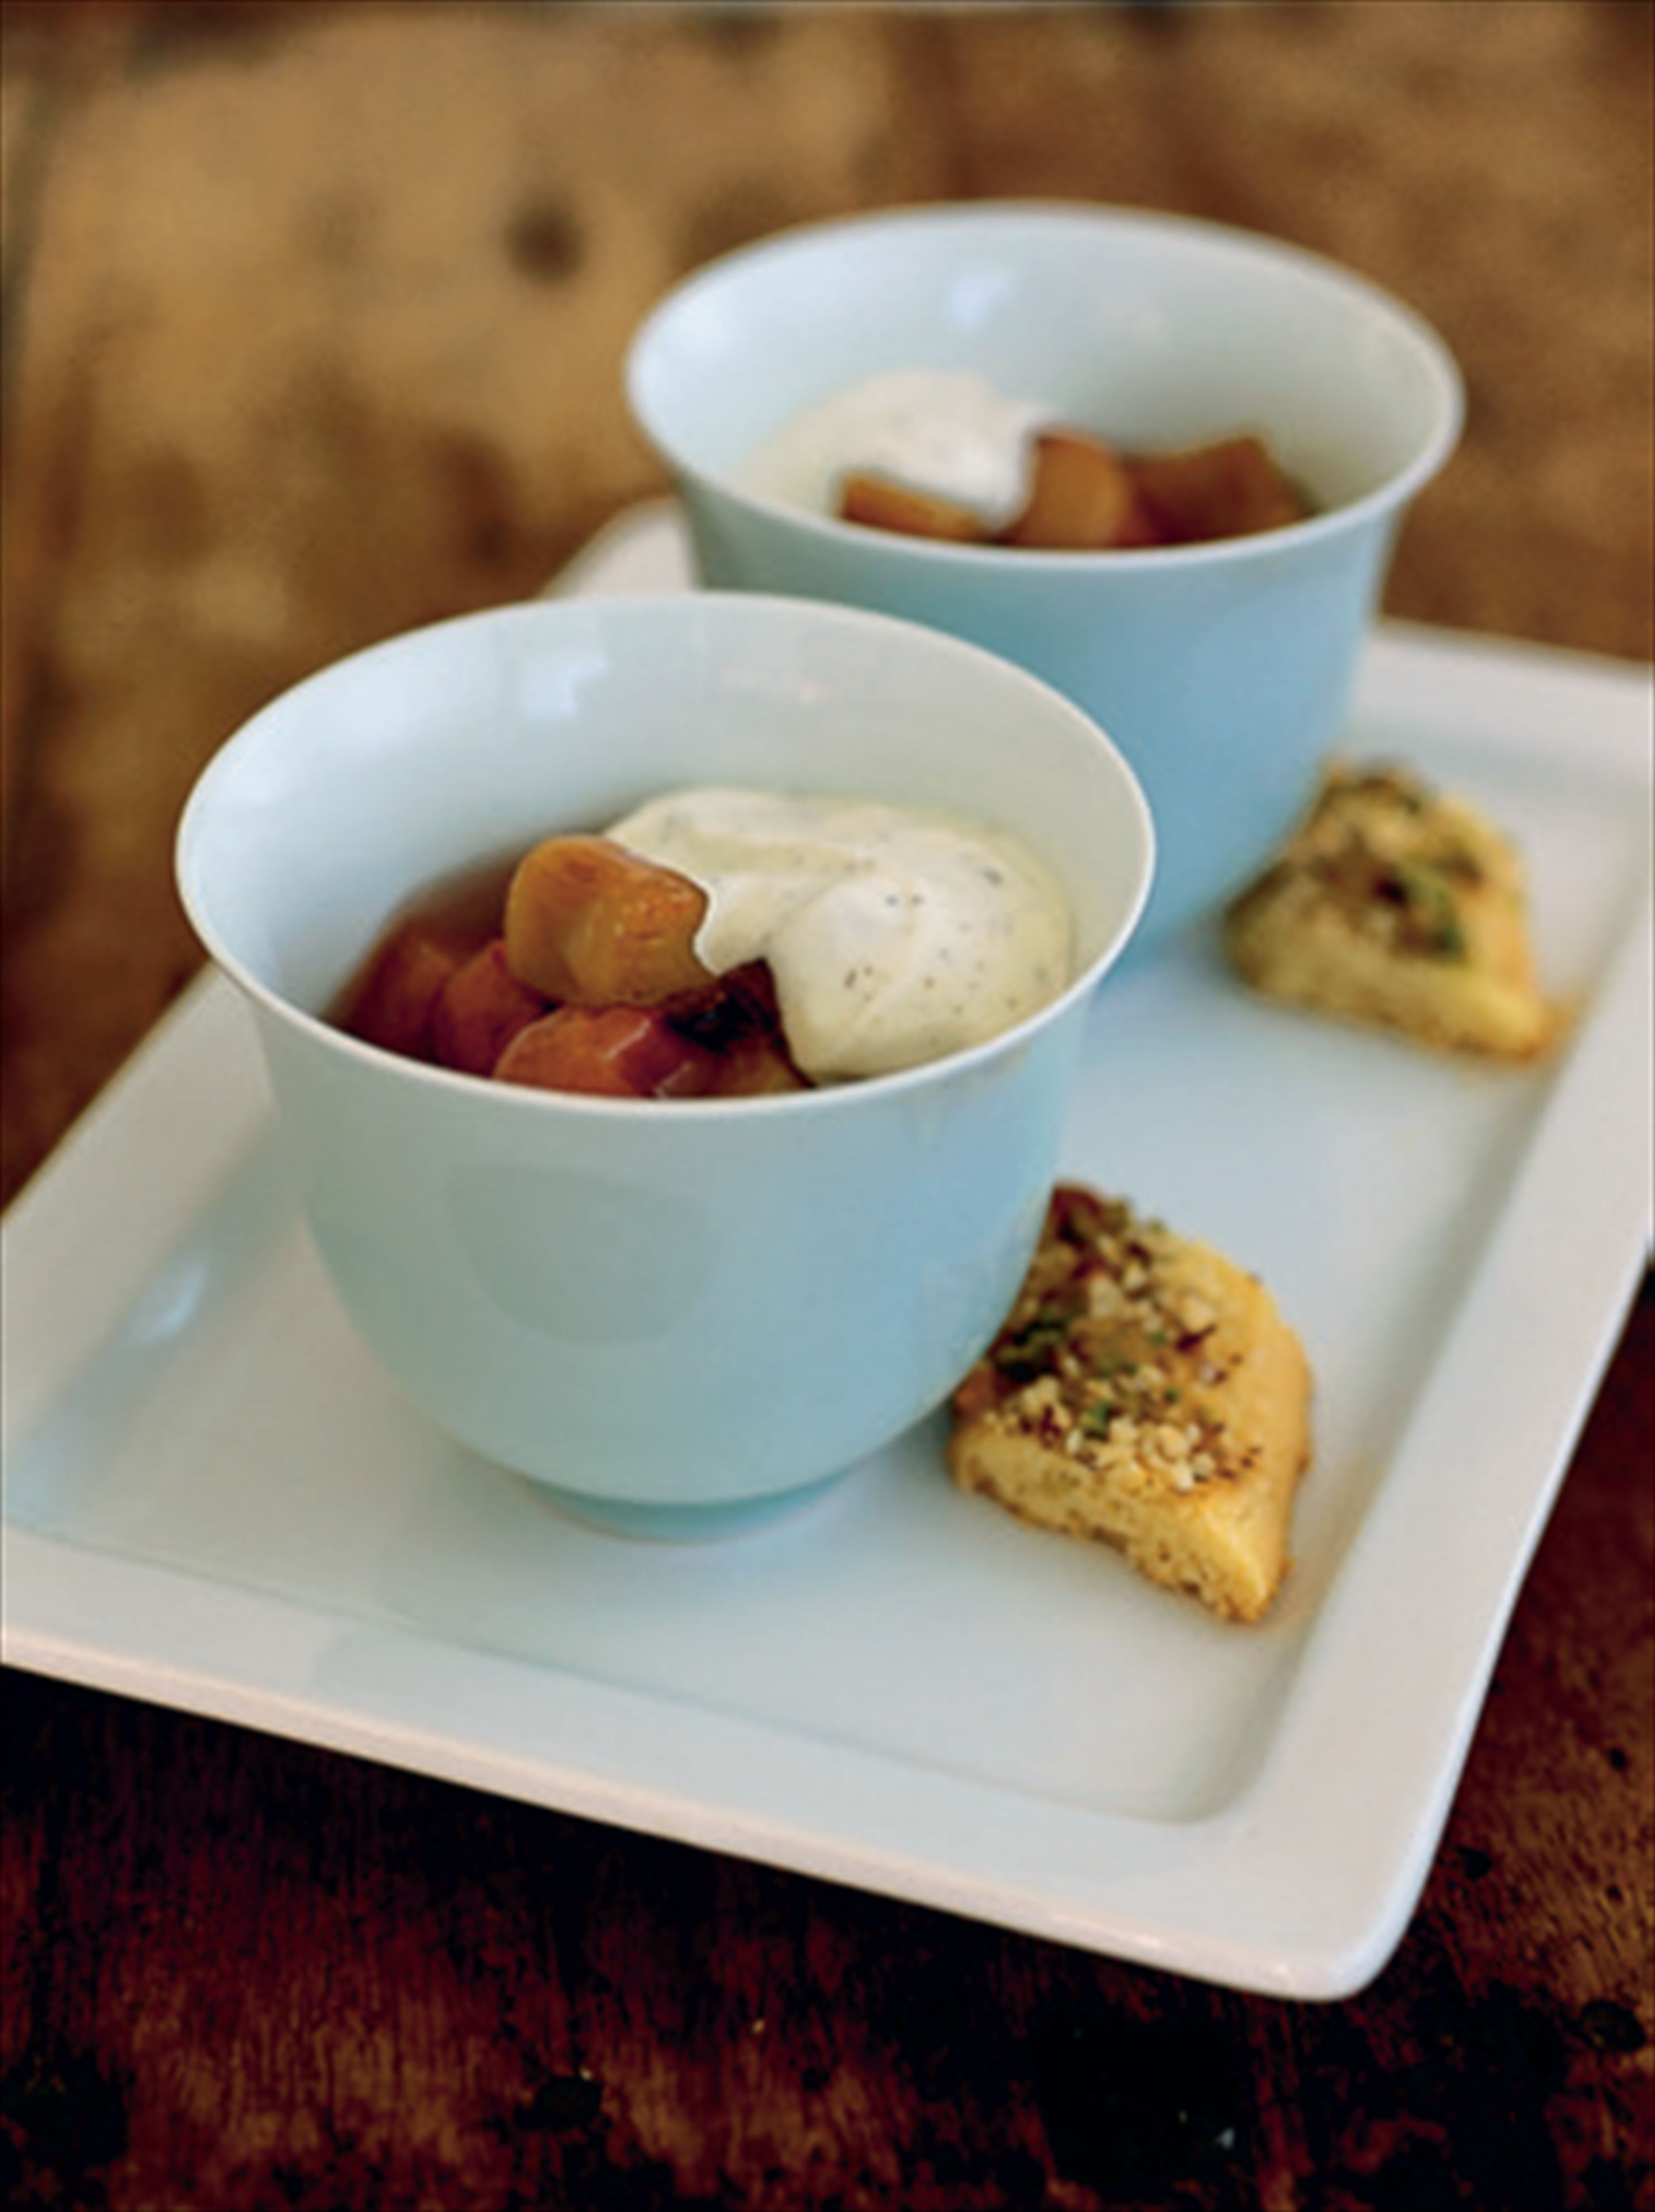 Rhubarb compote with cardamom cream